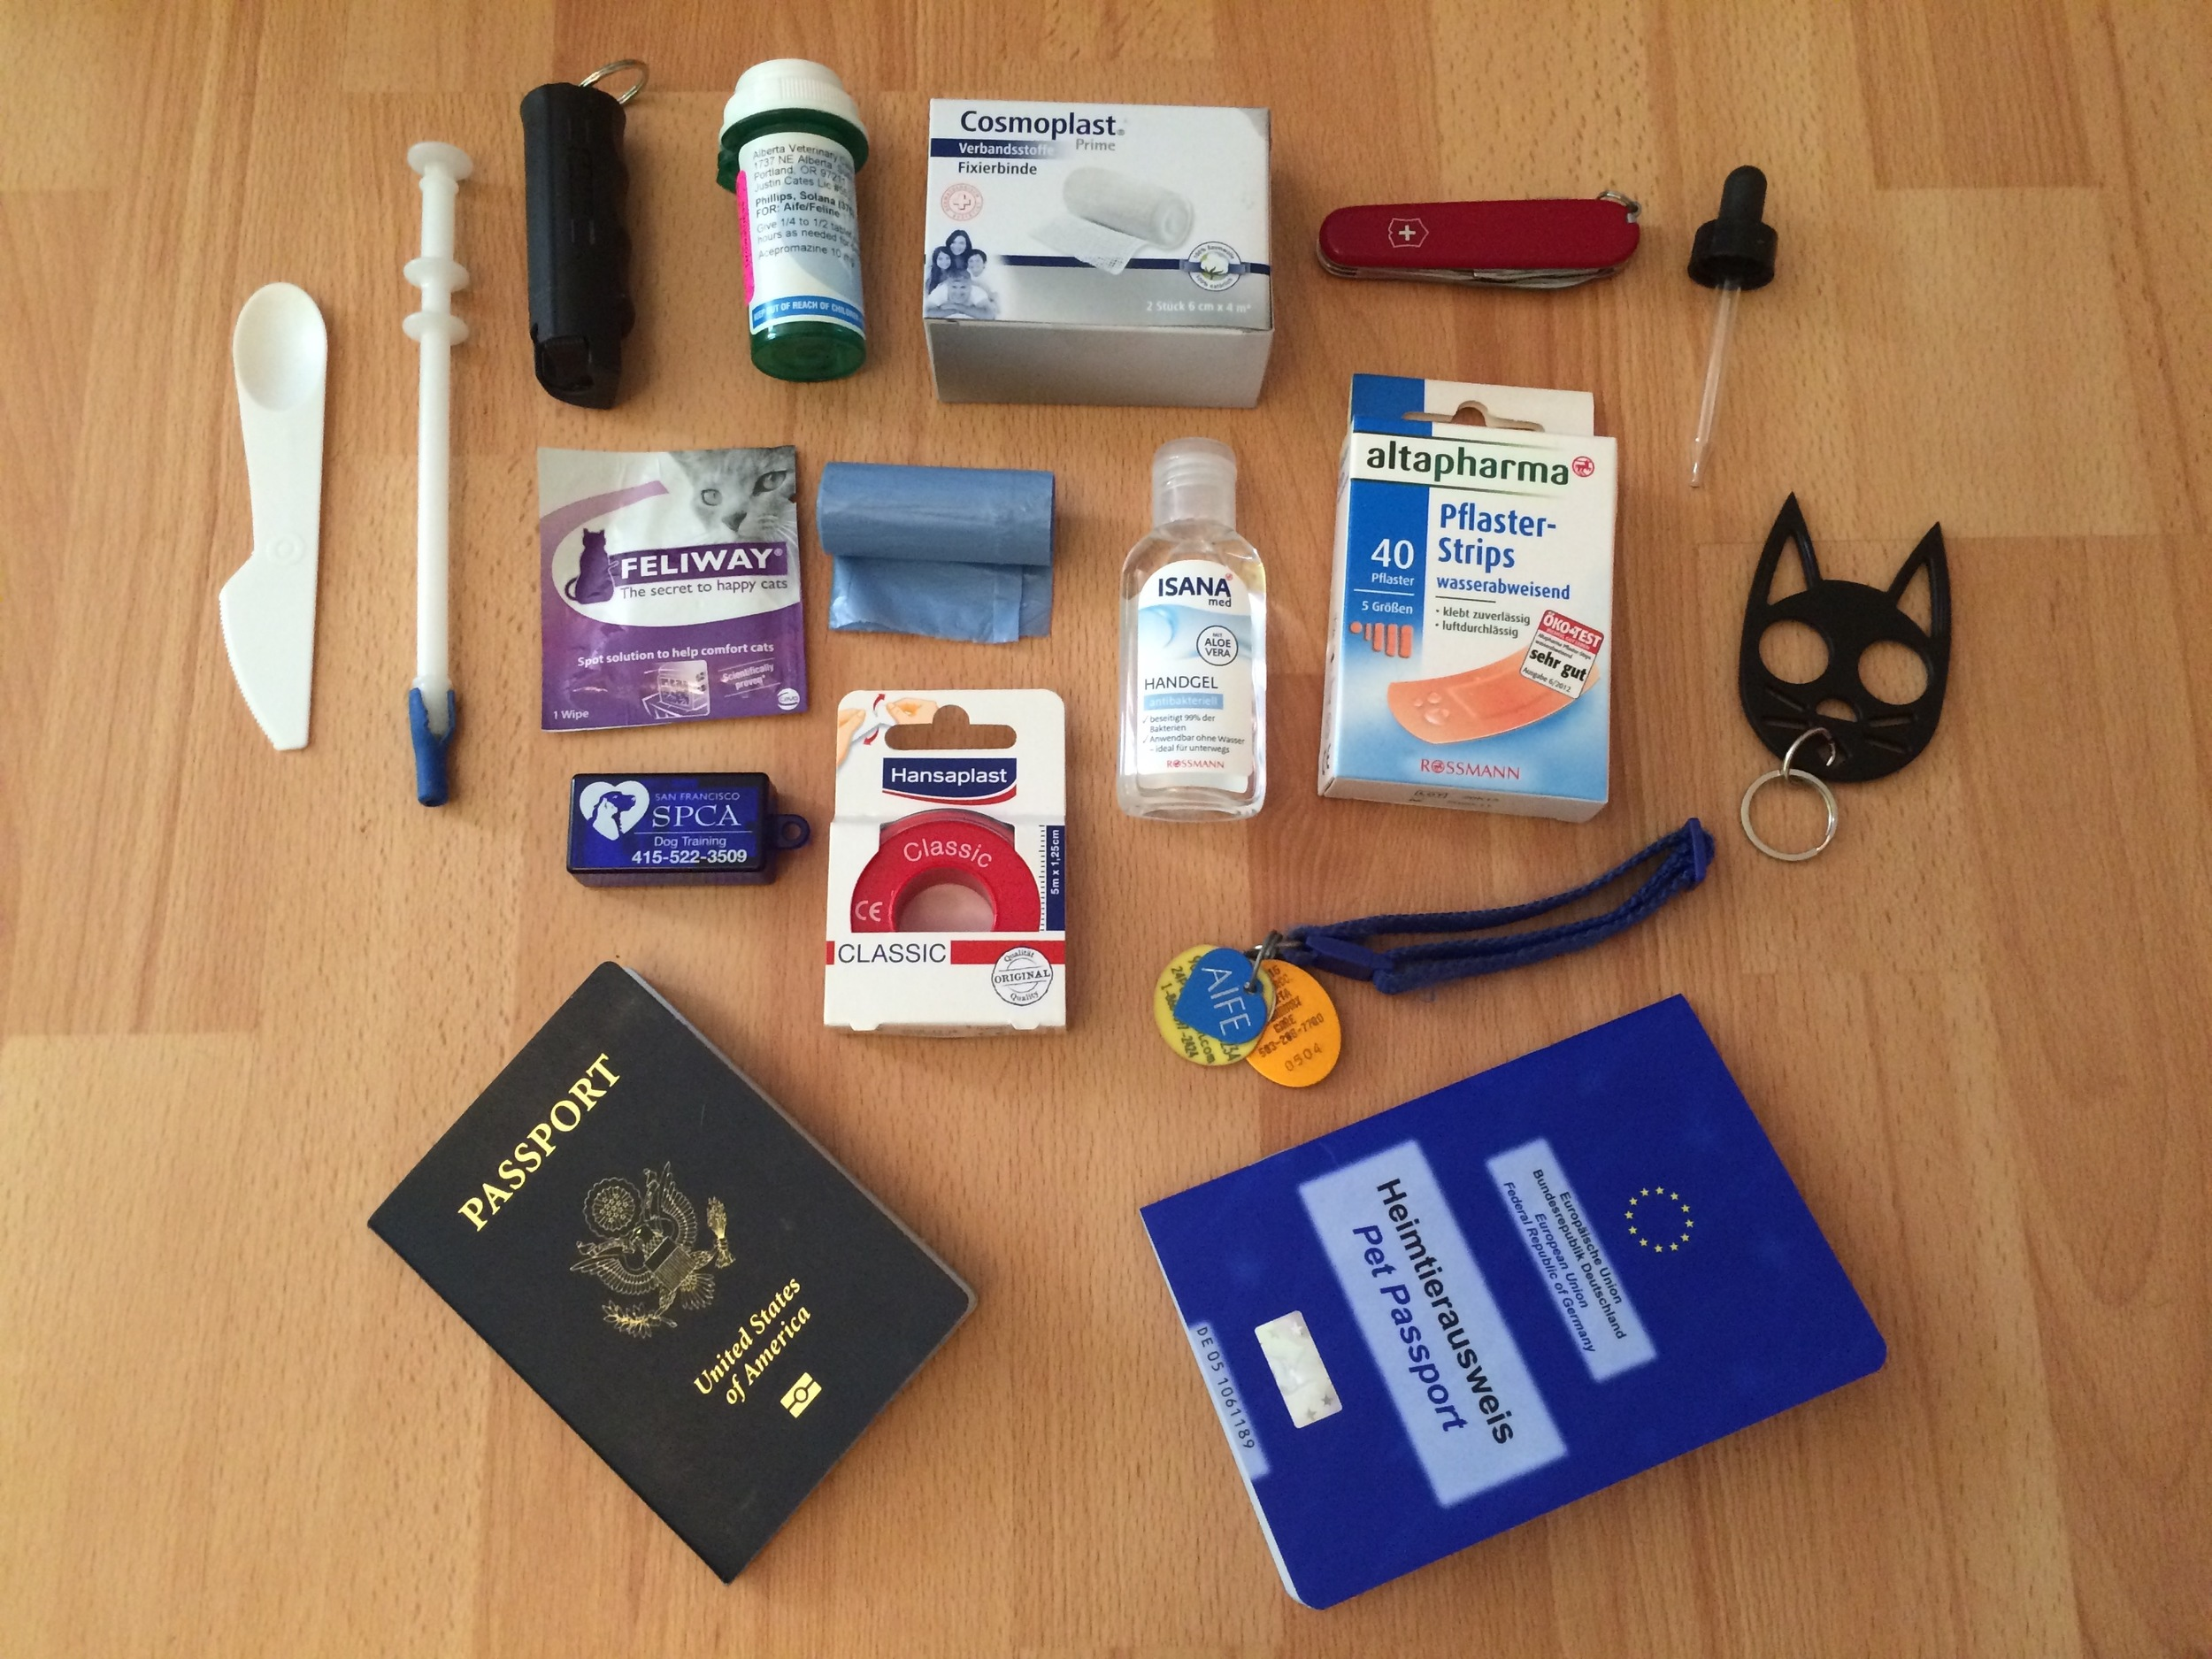 Some of the emergency cat-schlepping supplies we have collected: pepper spray, emergency sedatives, hand sanitized, pill-dropper, eye-dropper, cat-shaped shanking keychain, bandages, calming pheromone wipes, training clicker, rabies license & microchip tags, passports (human + cat)